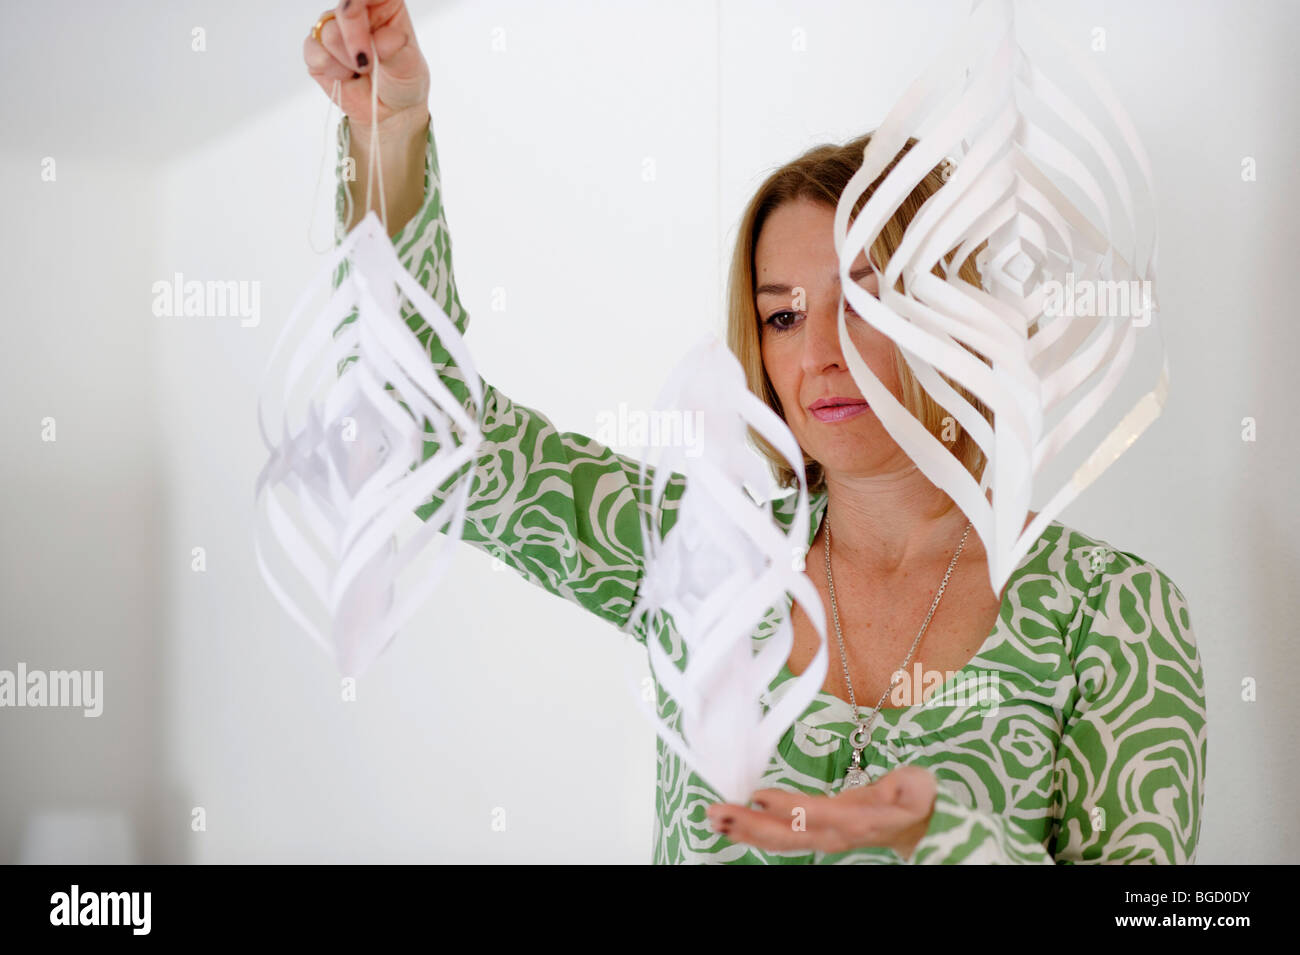 Woman with a wind chime, paper mobile, creativity, artist - Stock Image